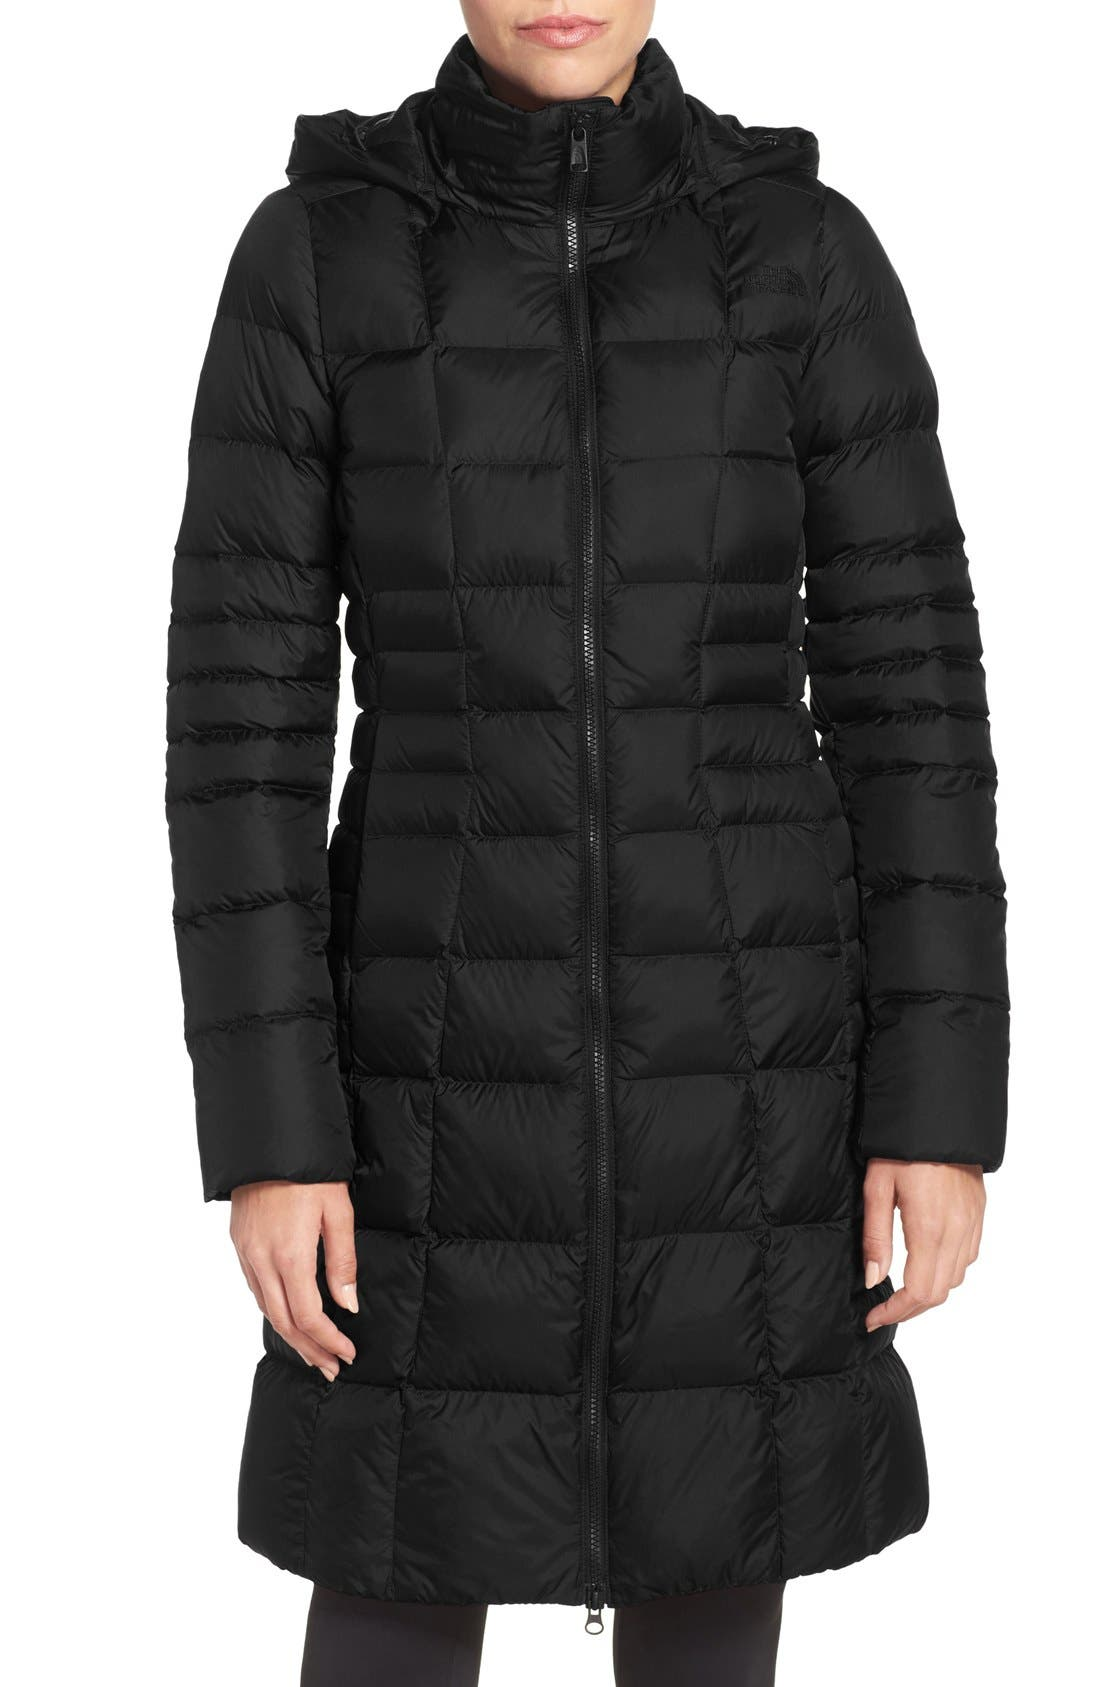 'Metropolis II' Hooded Water Resistant Down Parka,                             Main thumbnail 1, color,                             TNF BLACK